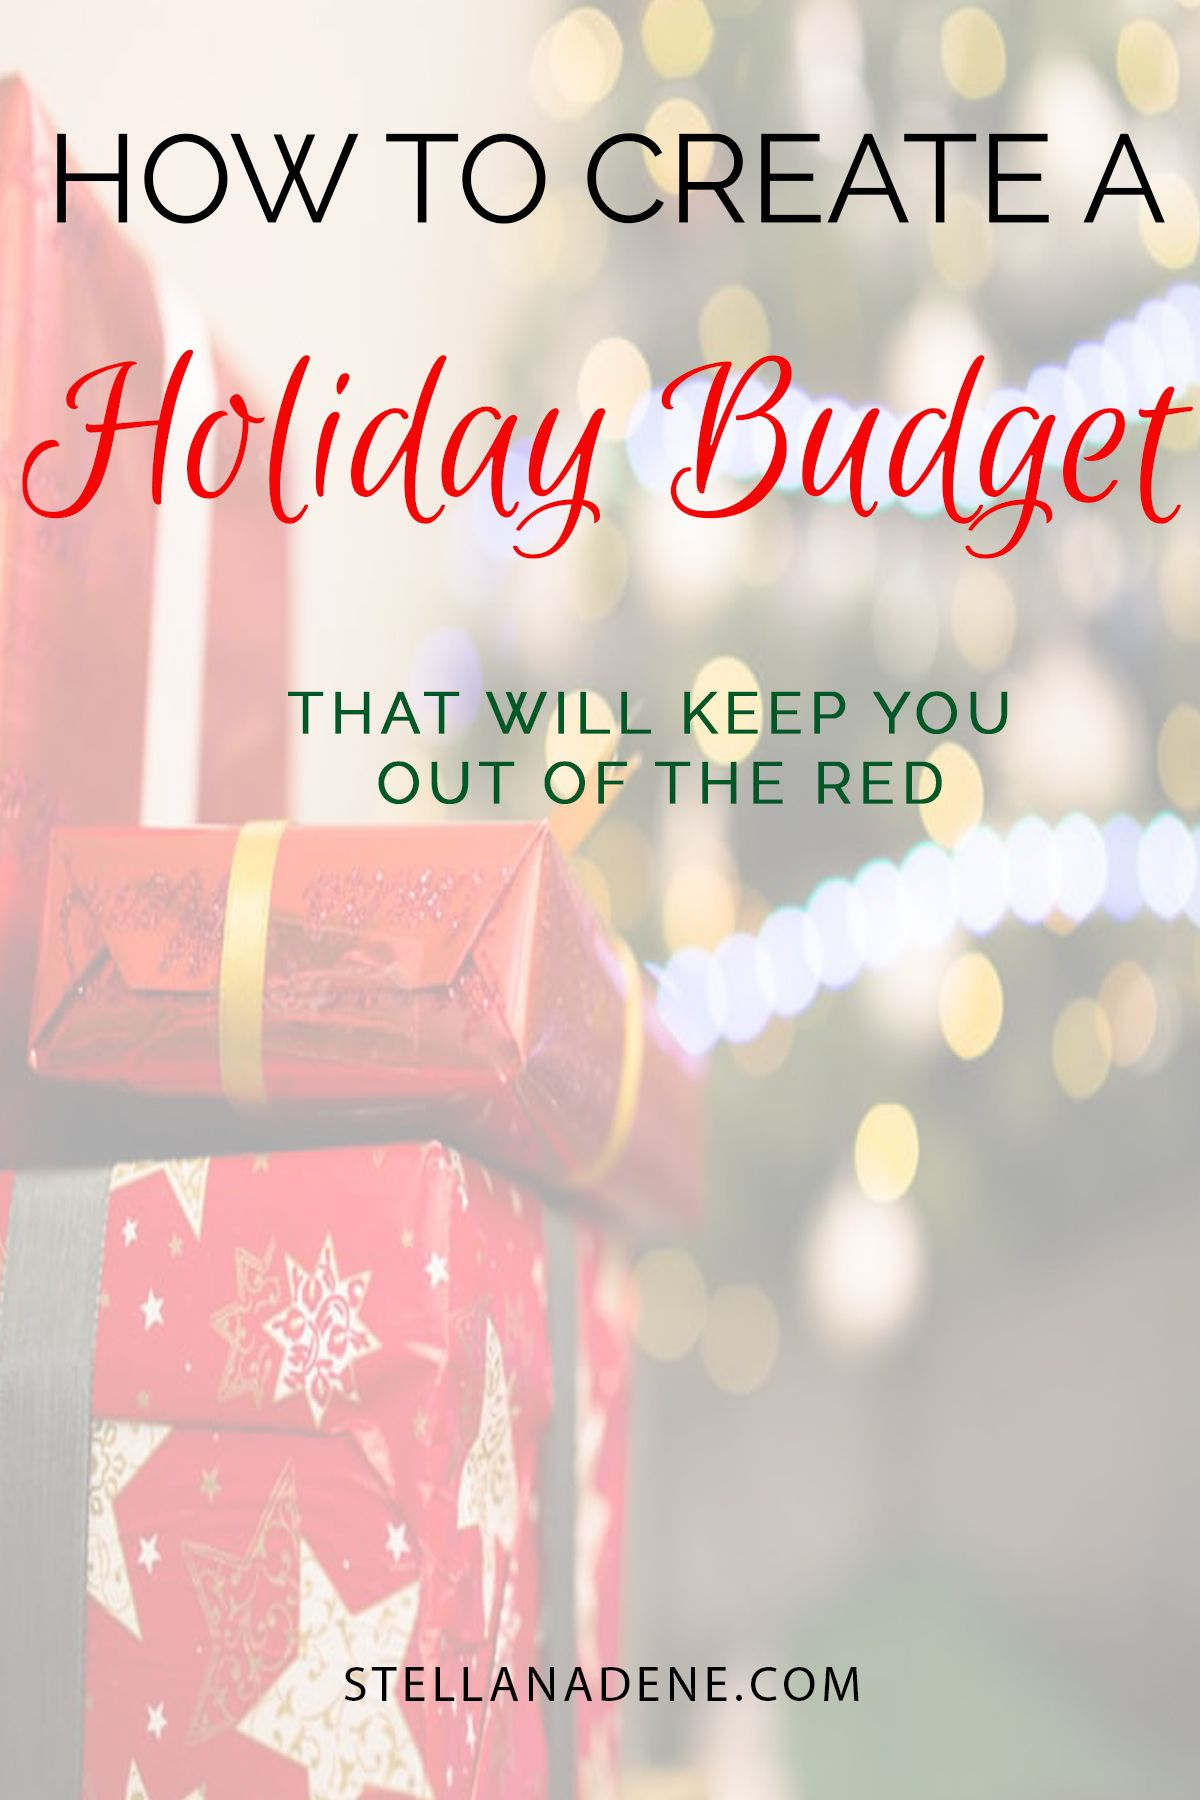 How To Create A Holiday Budget That Will Keep You Out Of